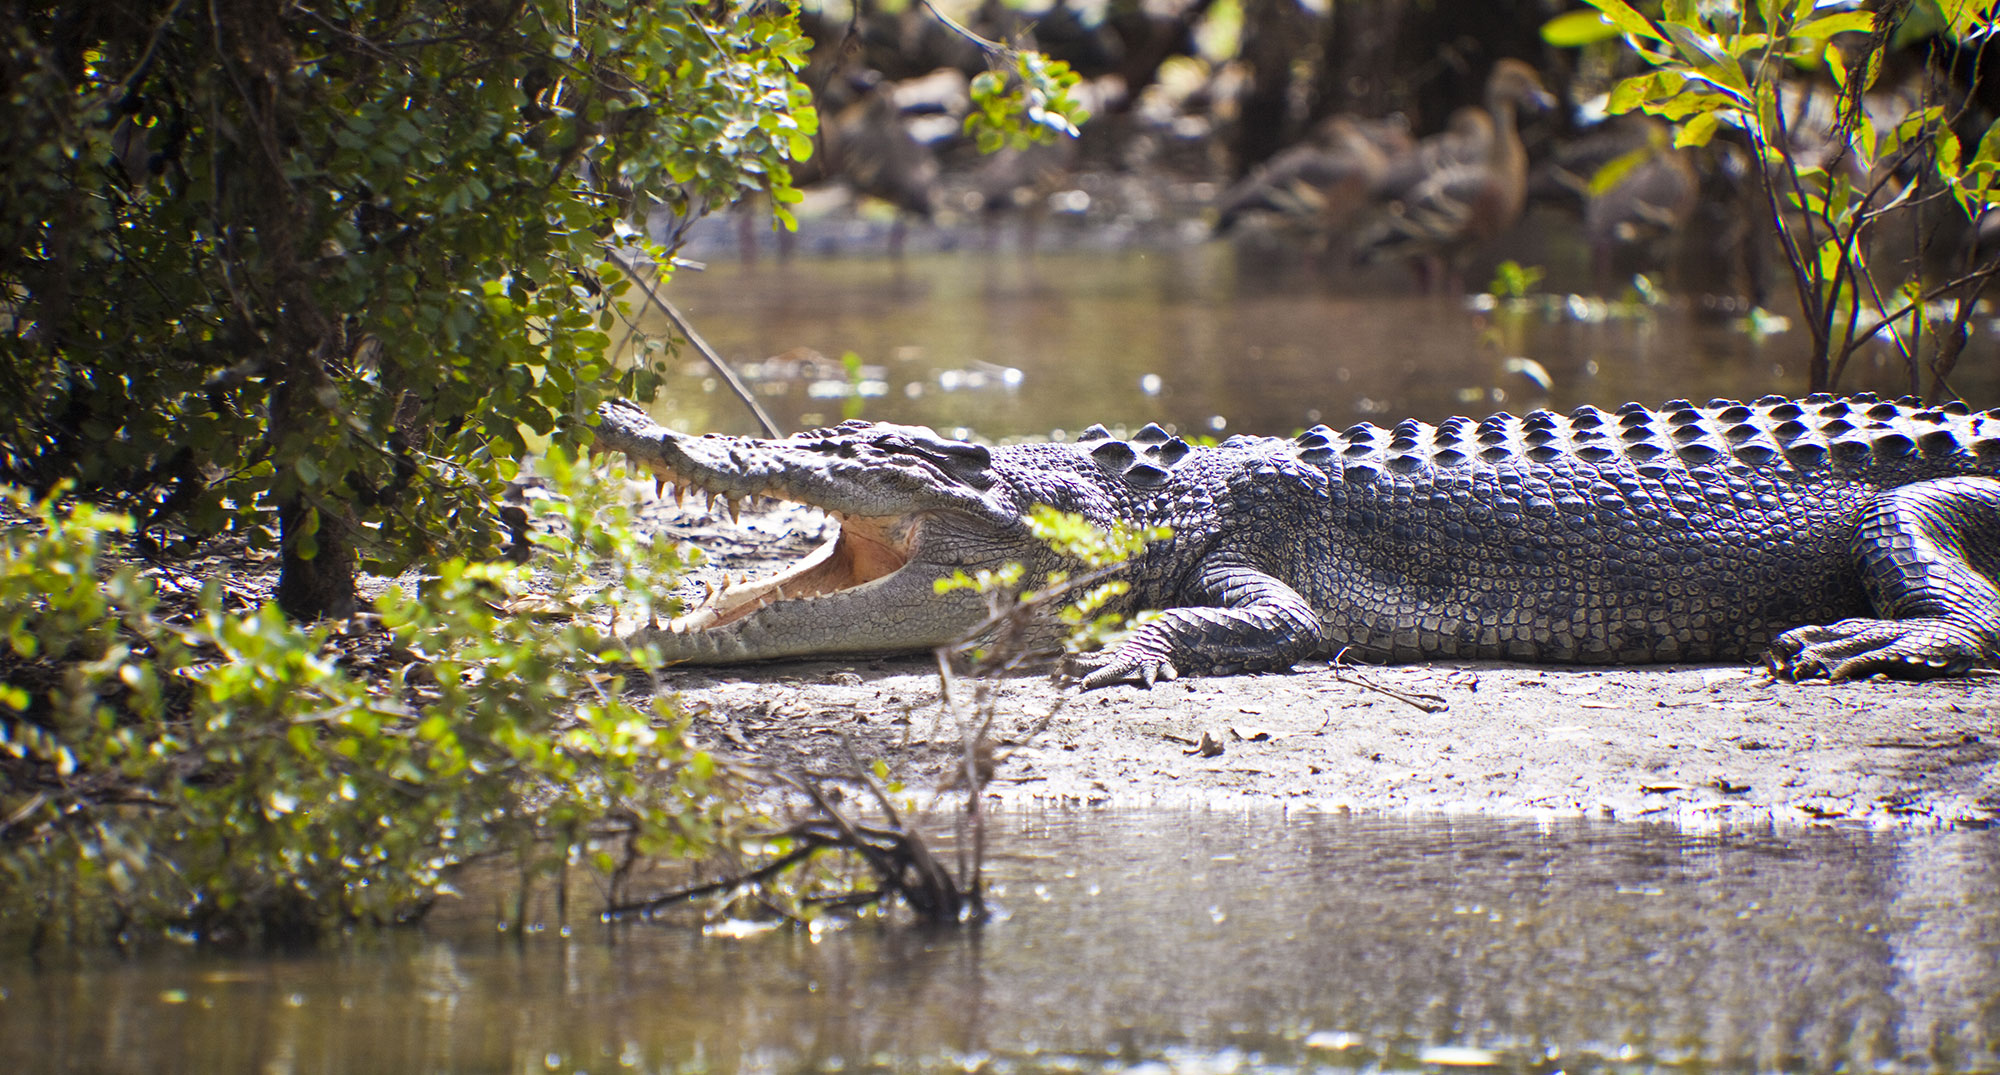 Crocodile at Kakadu National Park